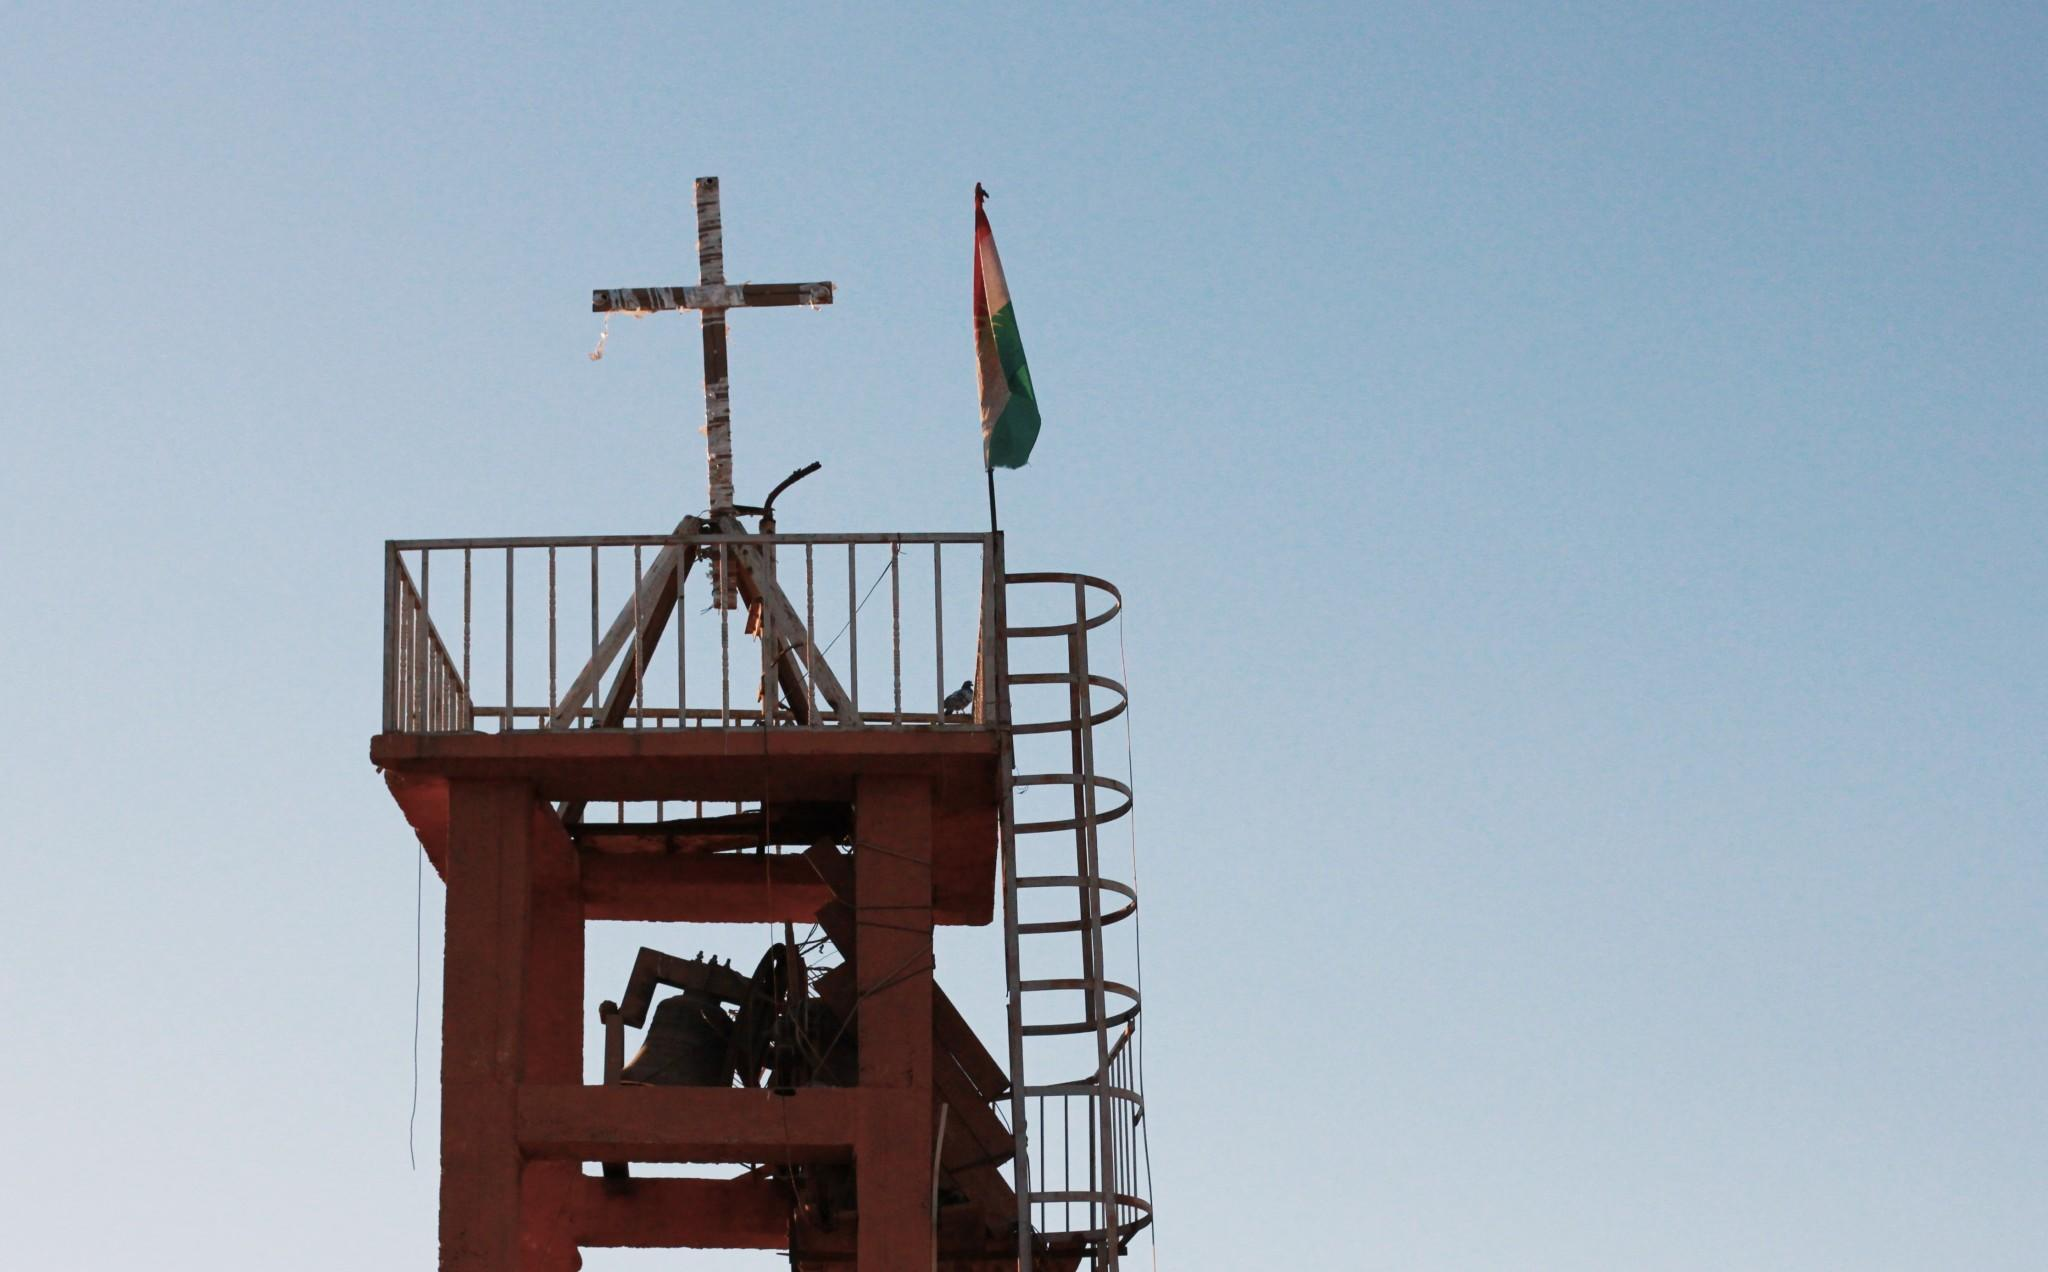 Peshmerga put the cross back up on the Batnay church when the liberated it in October. (Photo: Ash Gallagher for Yahoo News)